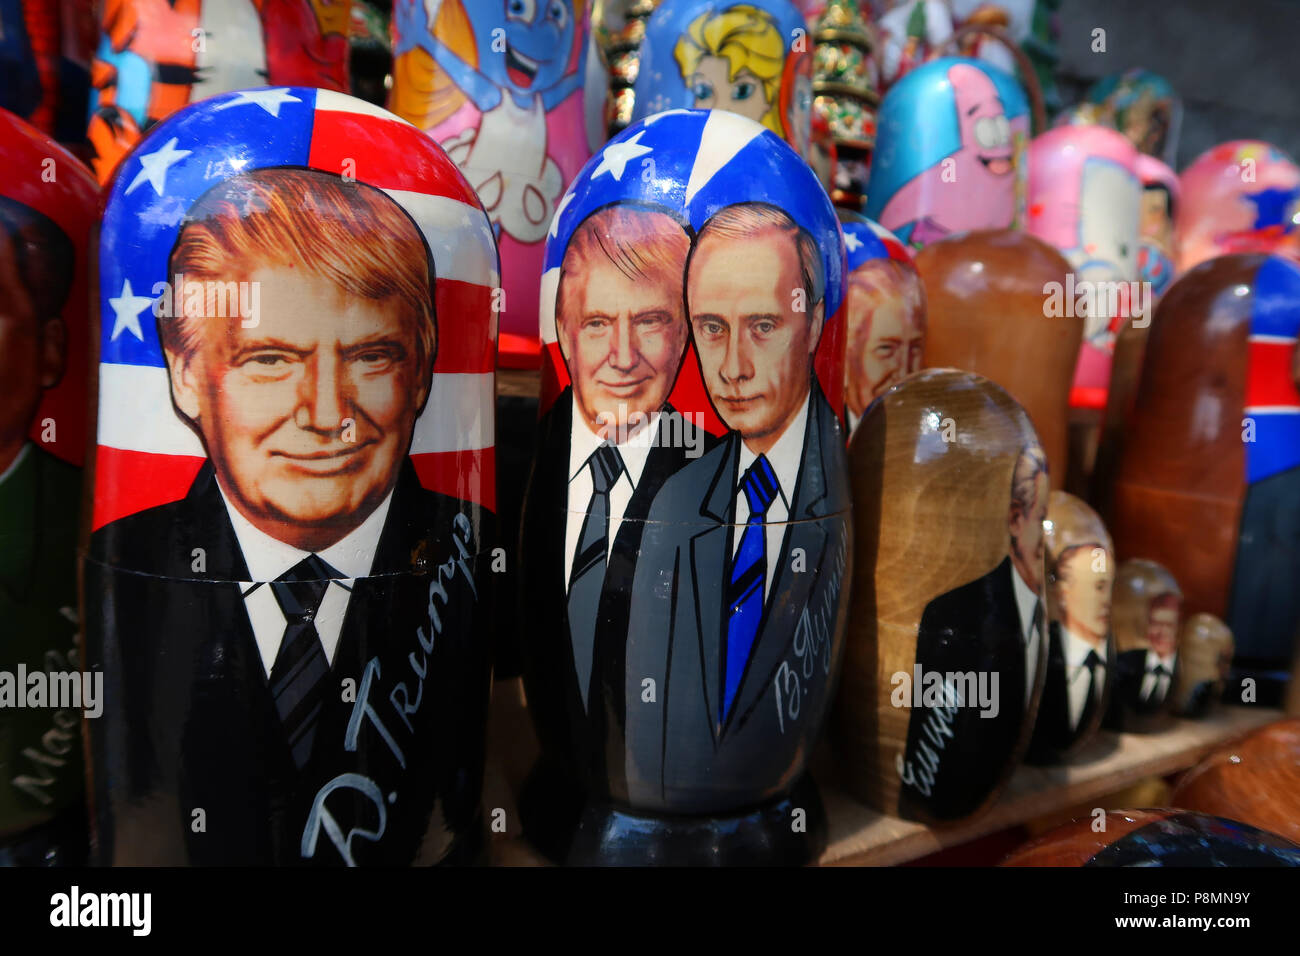 Traditional Matryoshka dolls depicting US President Donald Trump and Russian President Vladimir Putin for sale in a souvenir stall in the city of Kiev capital of Ukraine - Stock Image